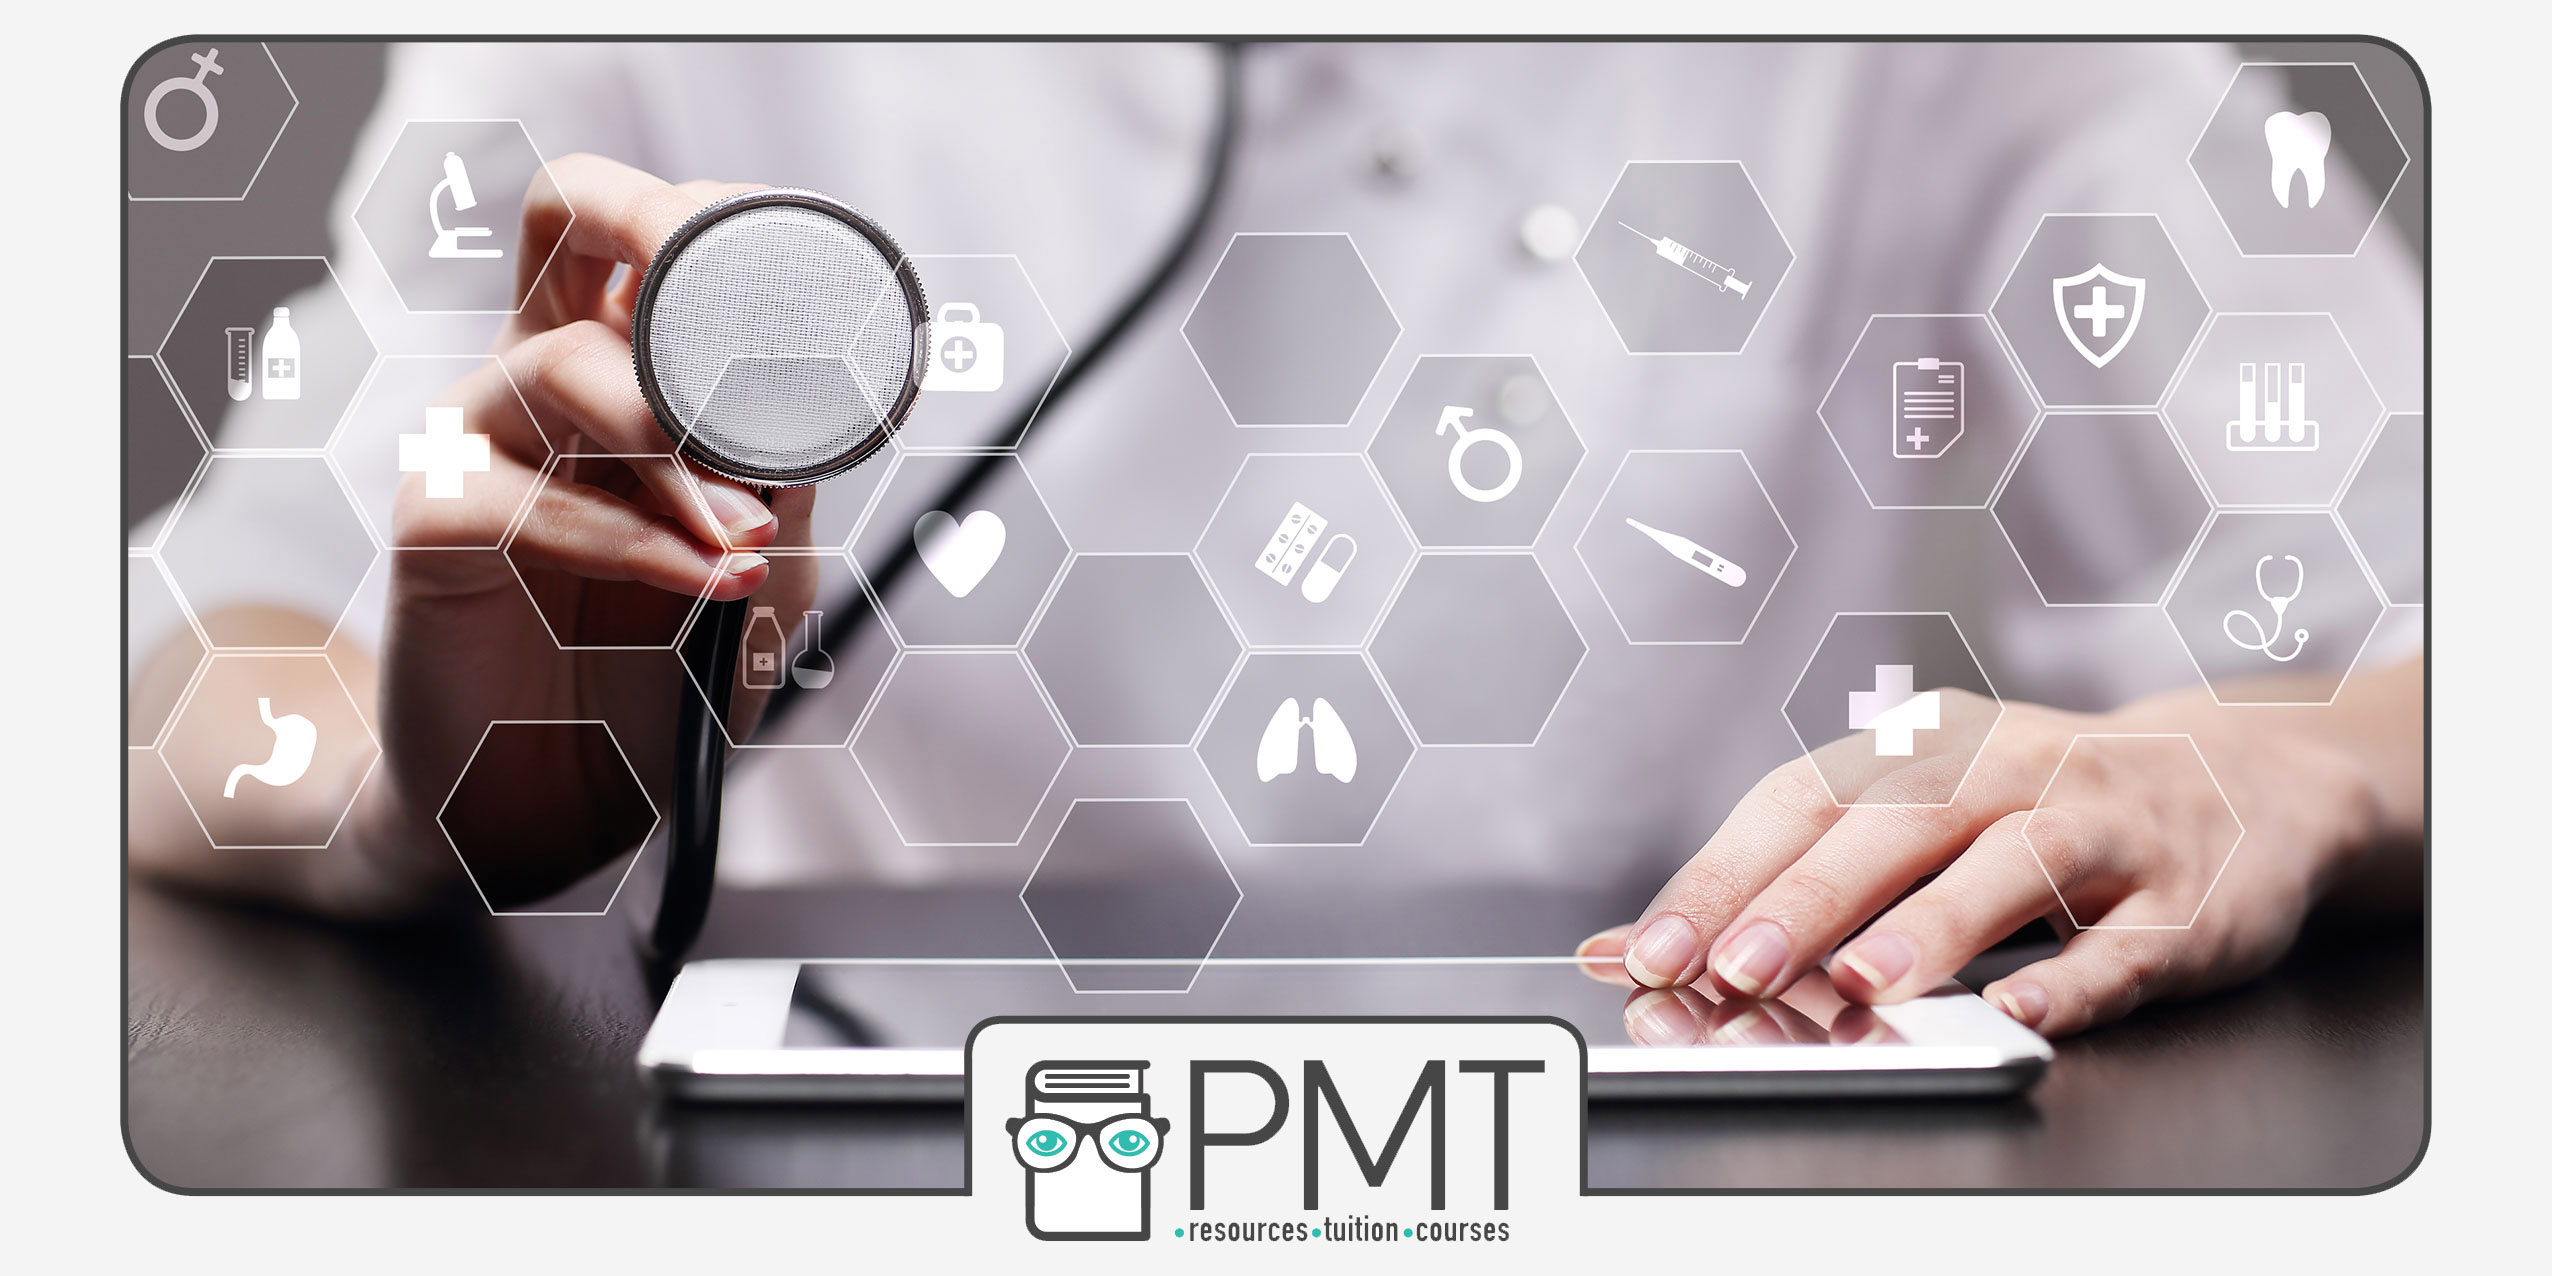 Our one-day Getting into Medicine course gives an overview of the entire medical application process. We have two-day UCAT and BMAT courses to help students get top marks in their admissions tests.